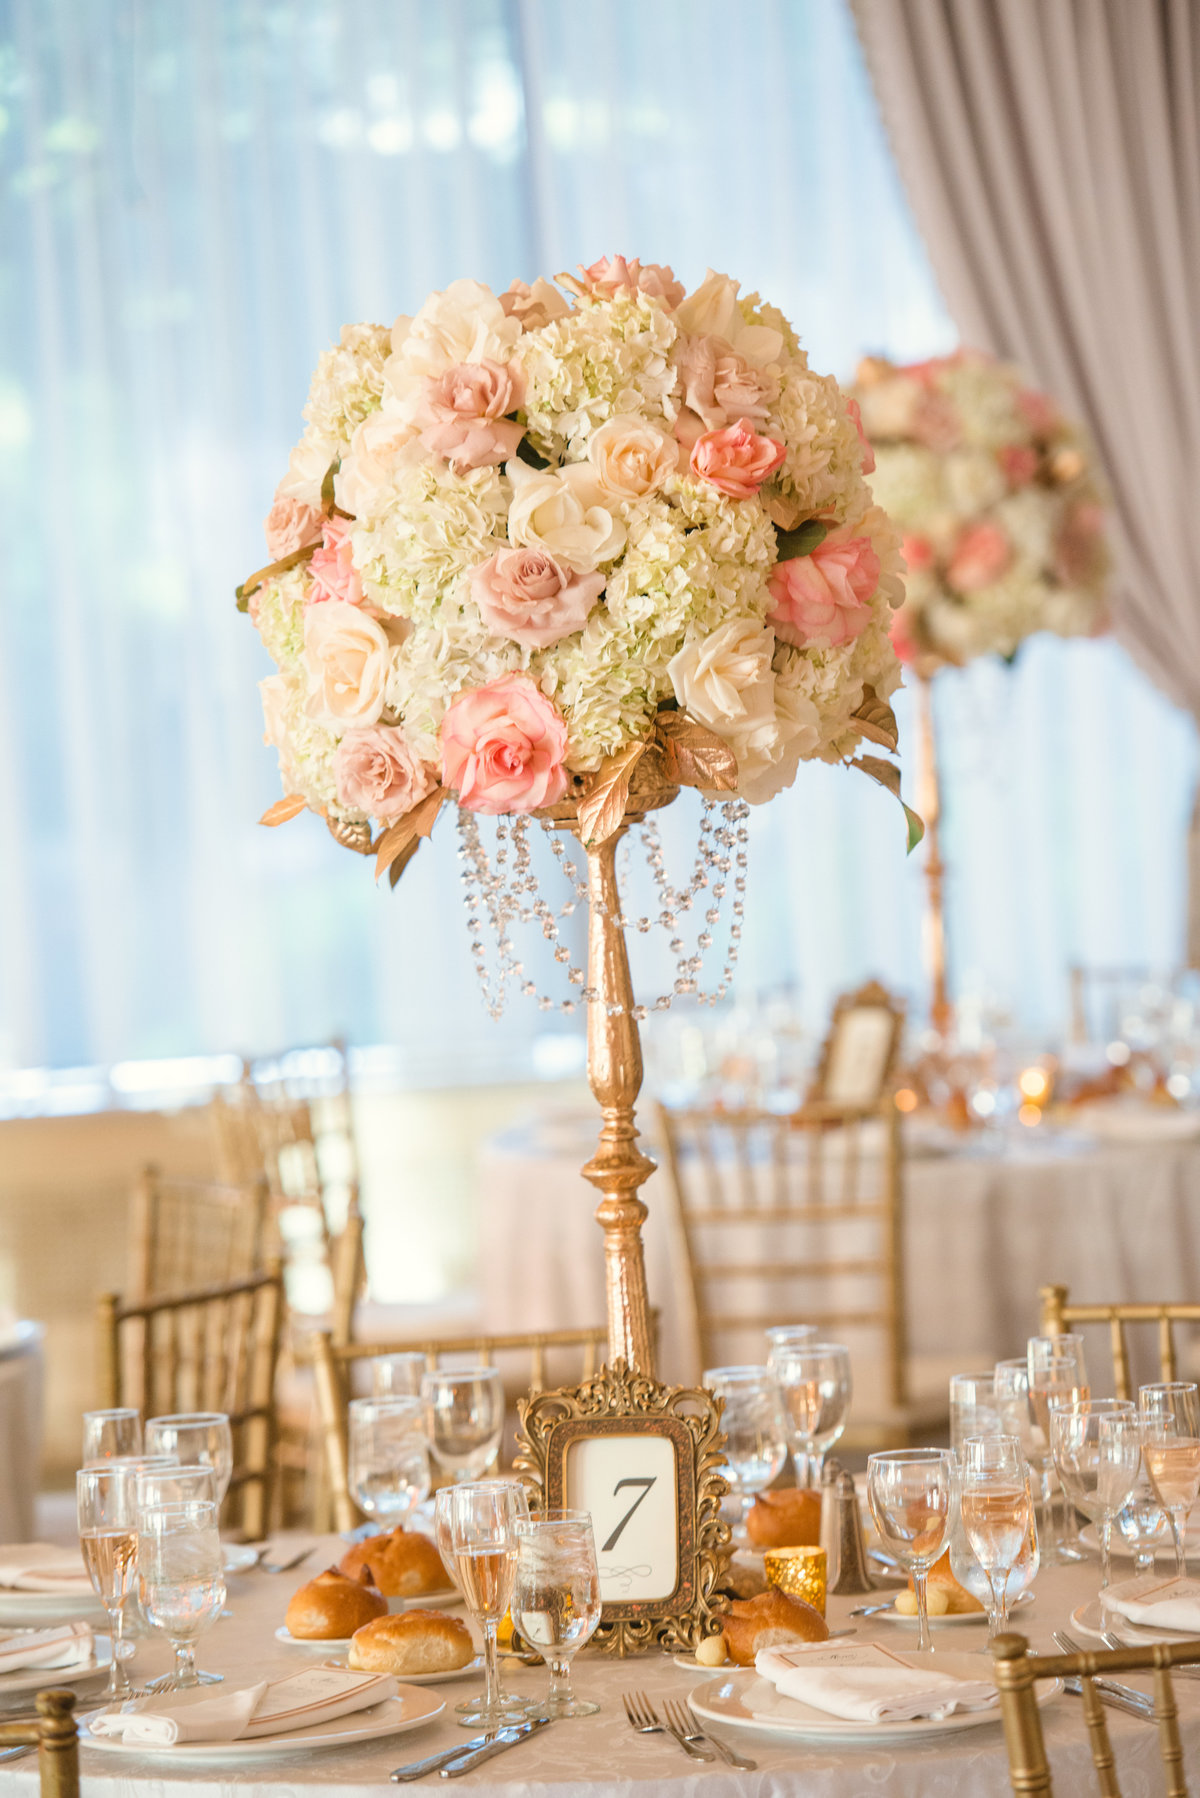 Wedding centerpiece of white and pink flowers at Glen Cove Mansion